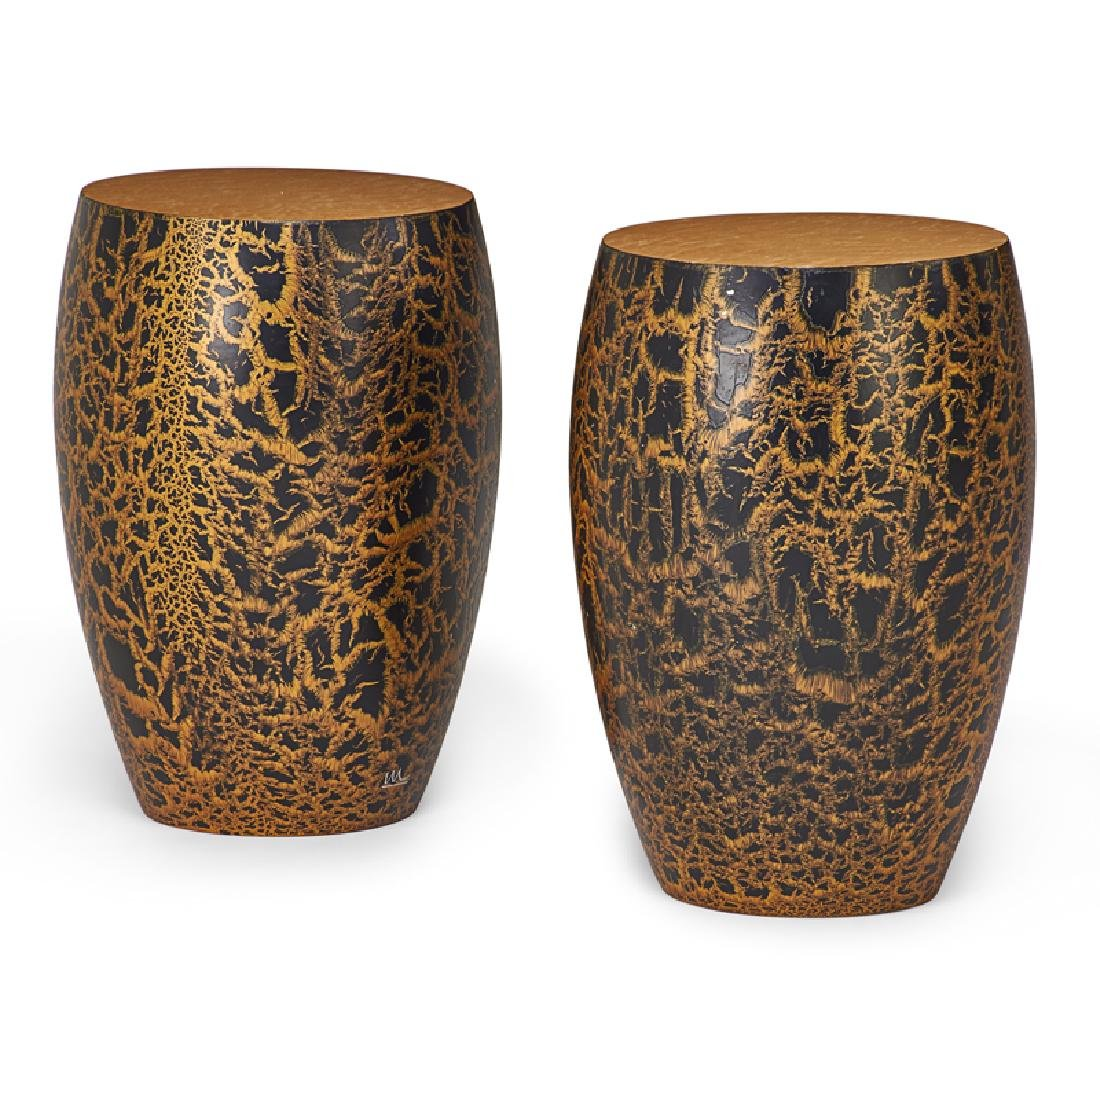 WENDELL CASTLE Pair of Karma side tables